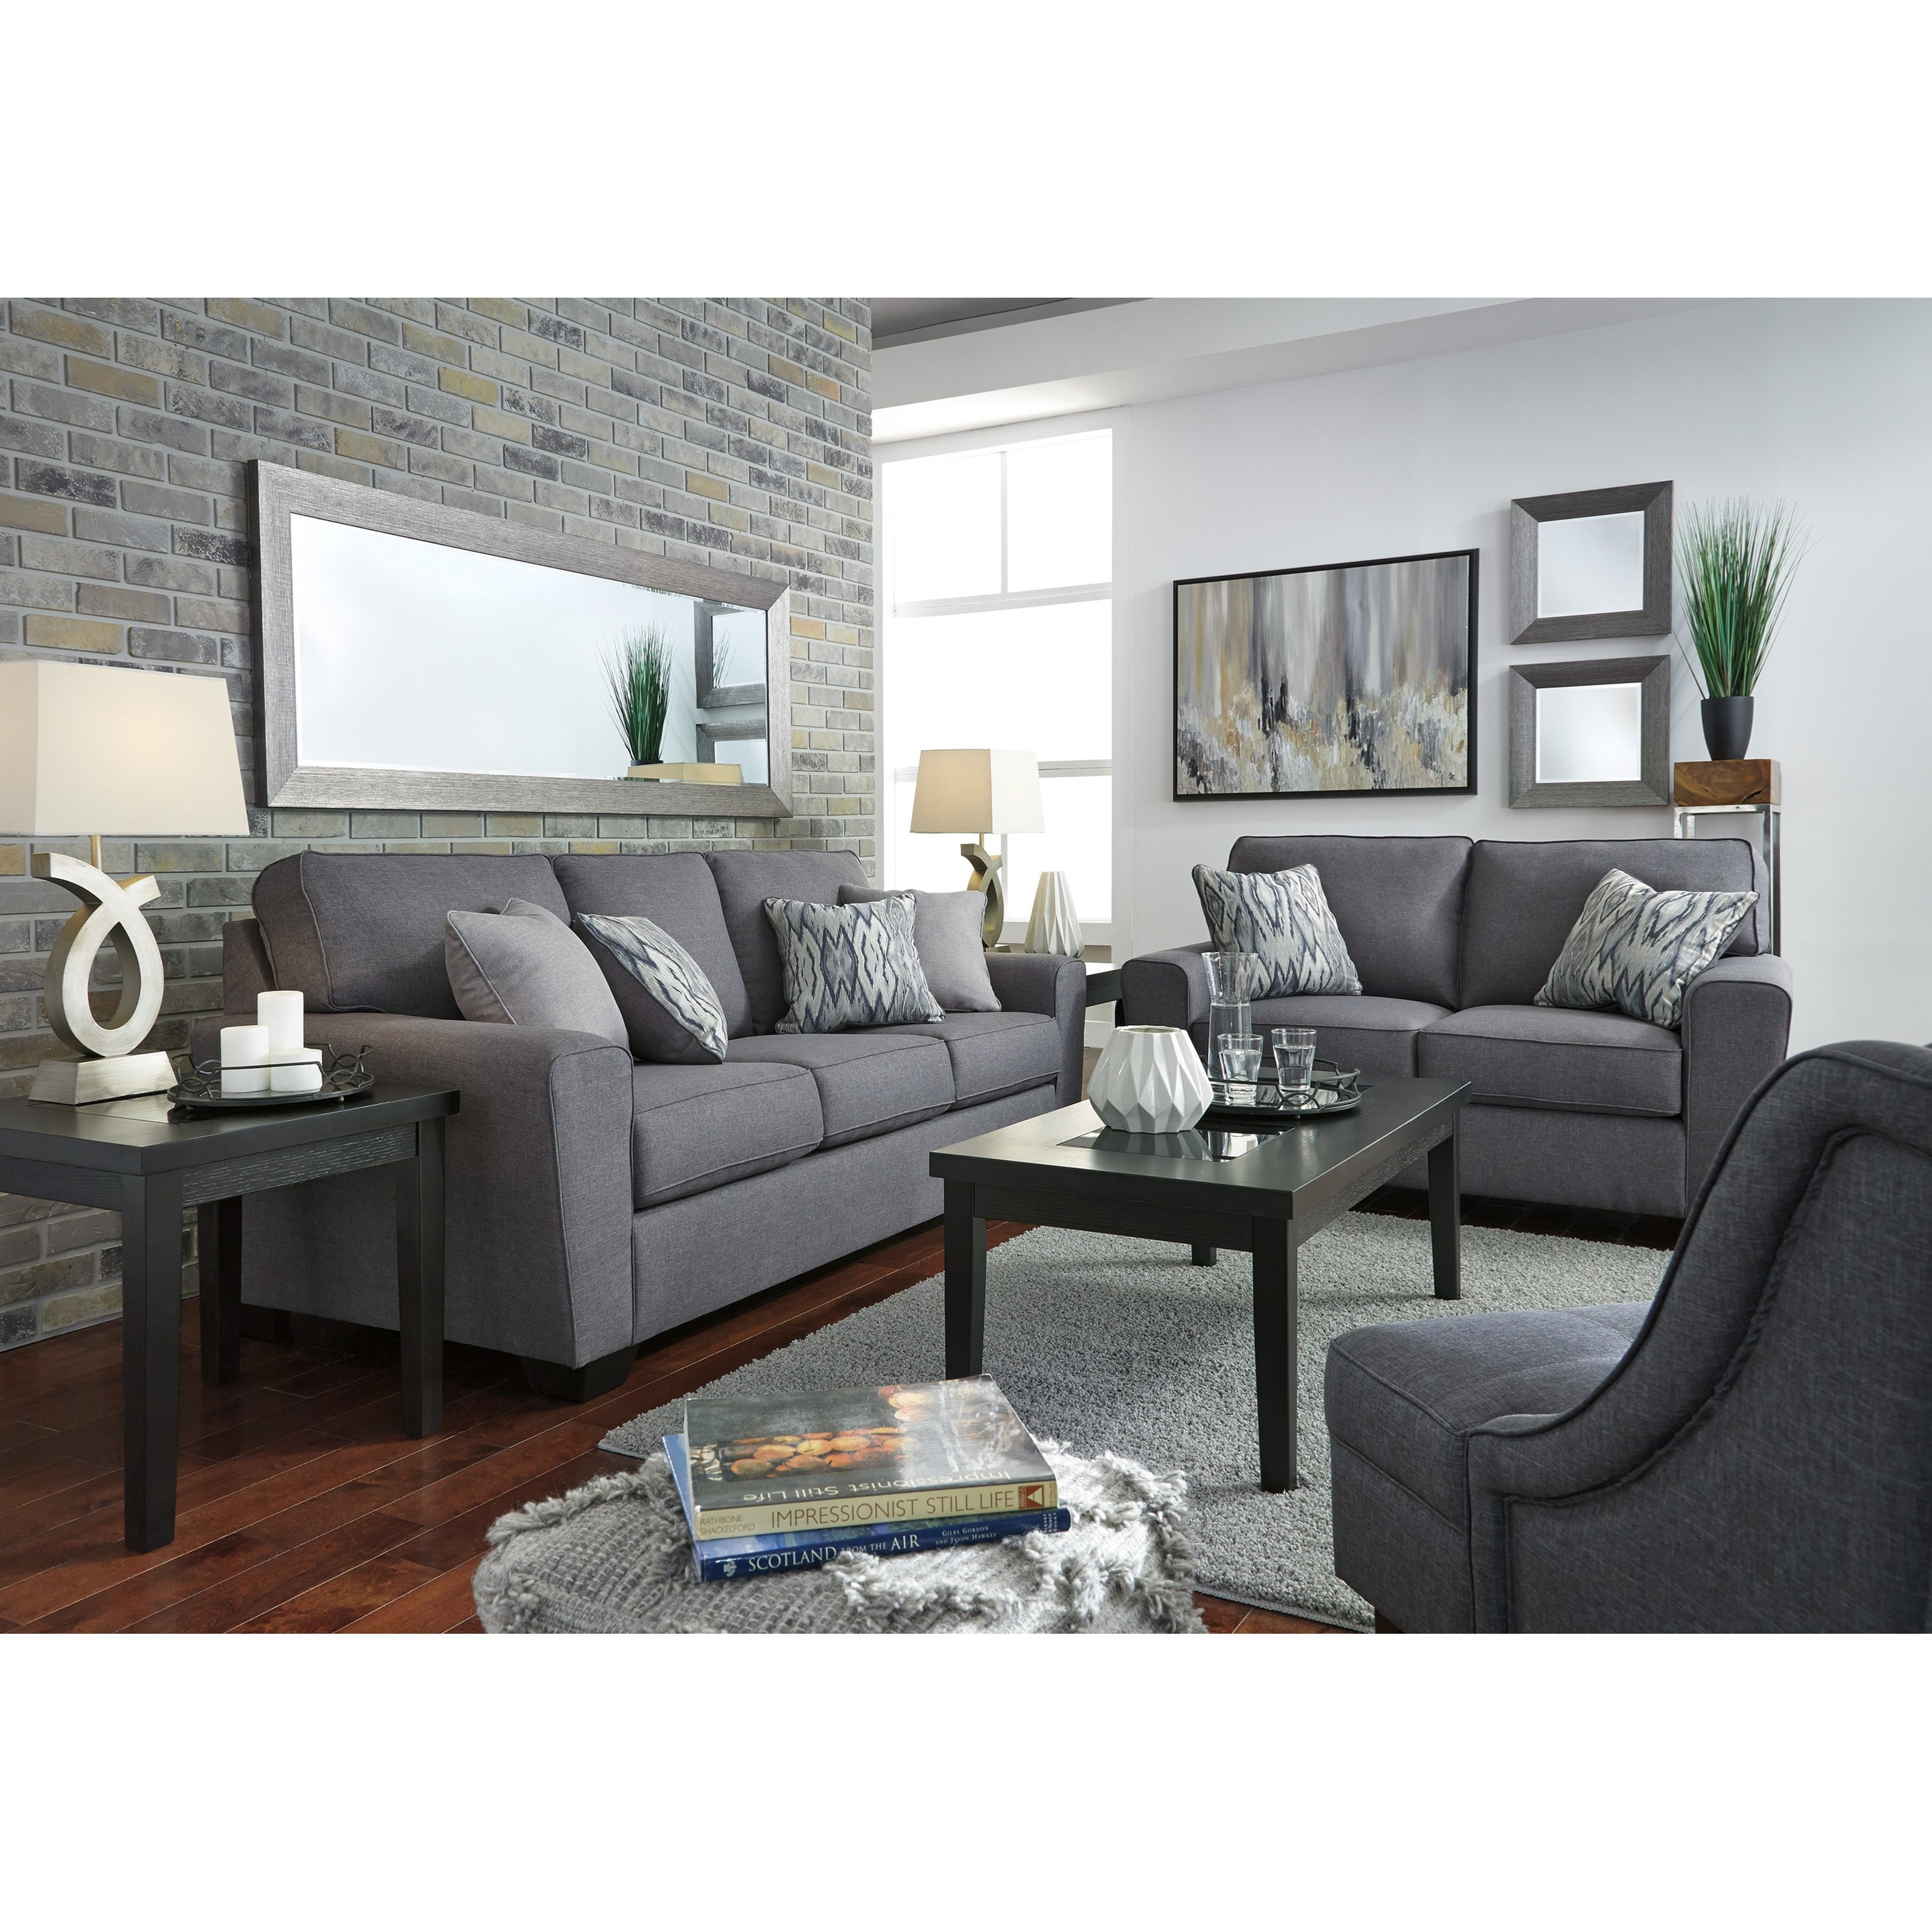 Ashley furniture calion stationary living room group zak for Living room furniture groups